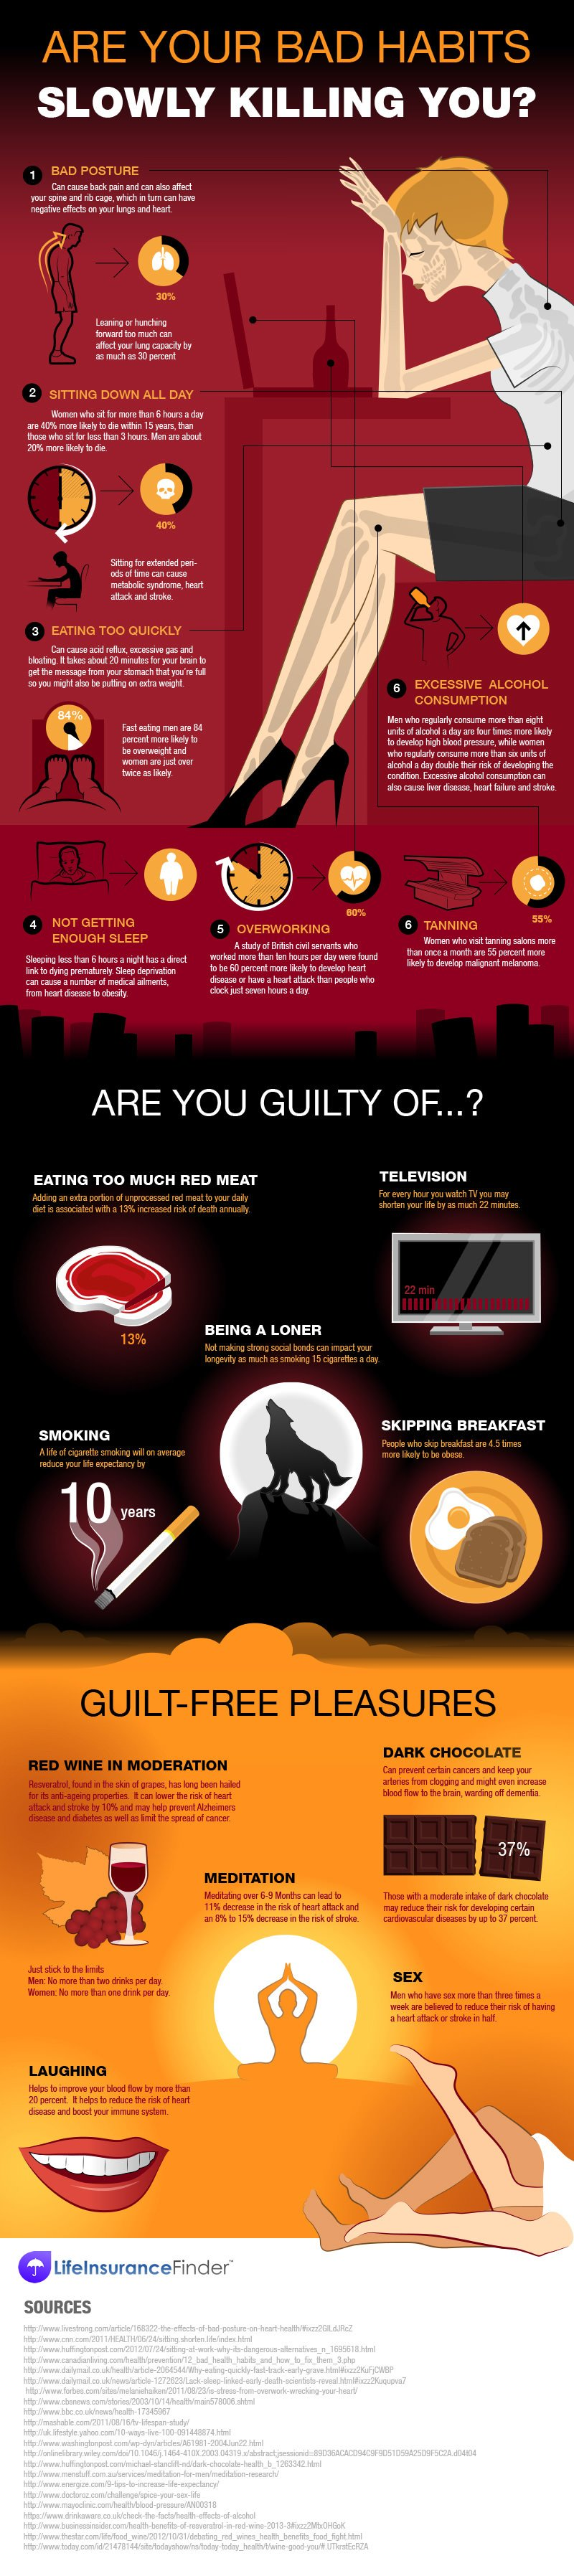 Are Your Bad Habits Slowly Killing You Infographic